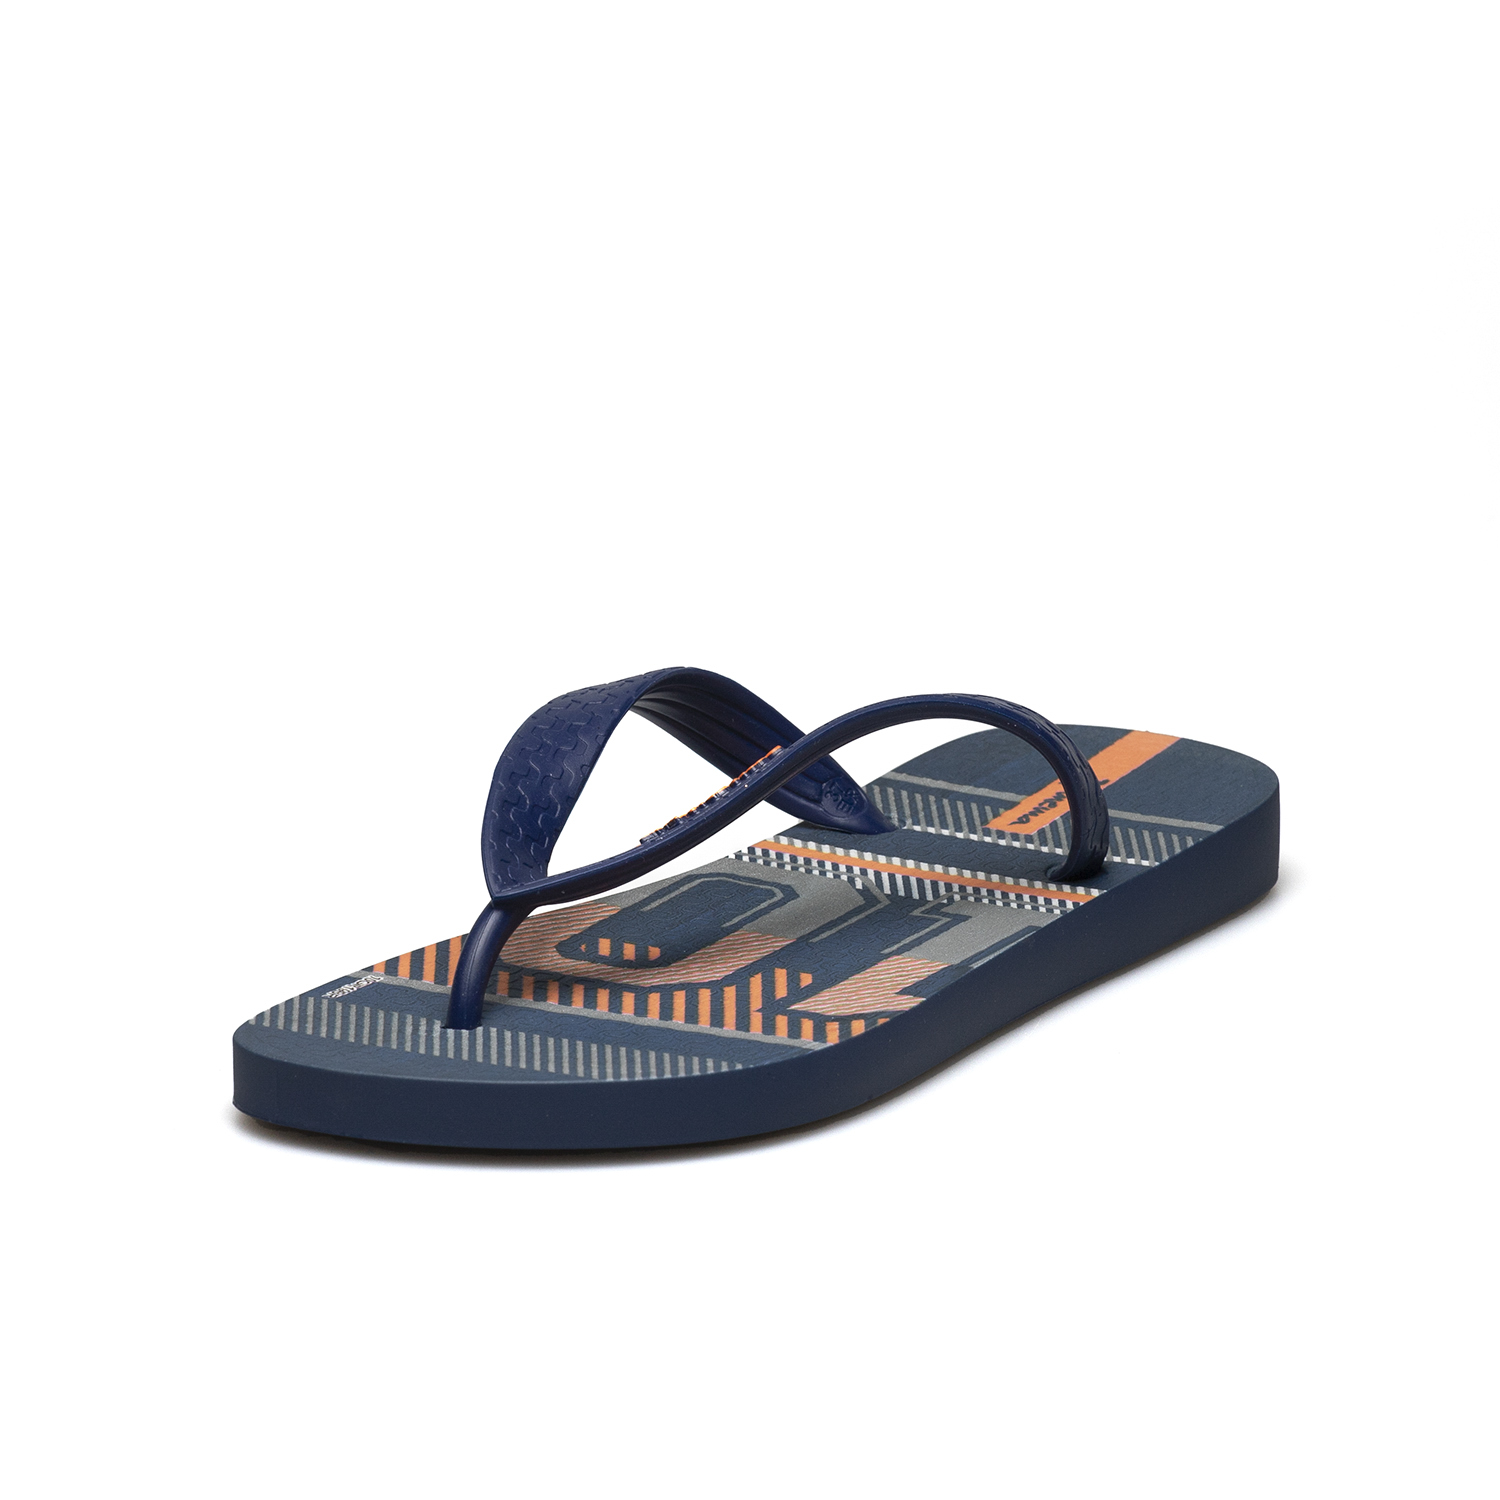 IPANEMA ANATOMIC KID BLUE